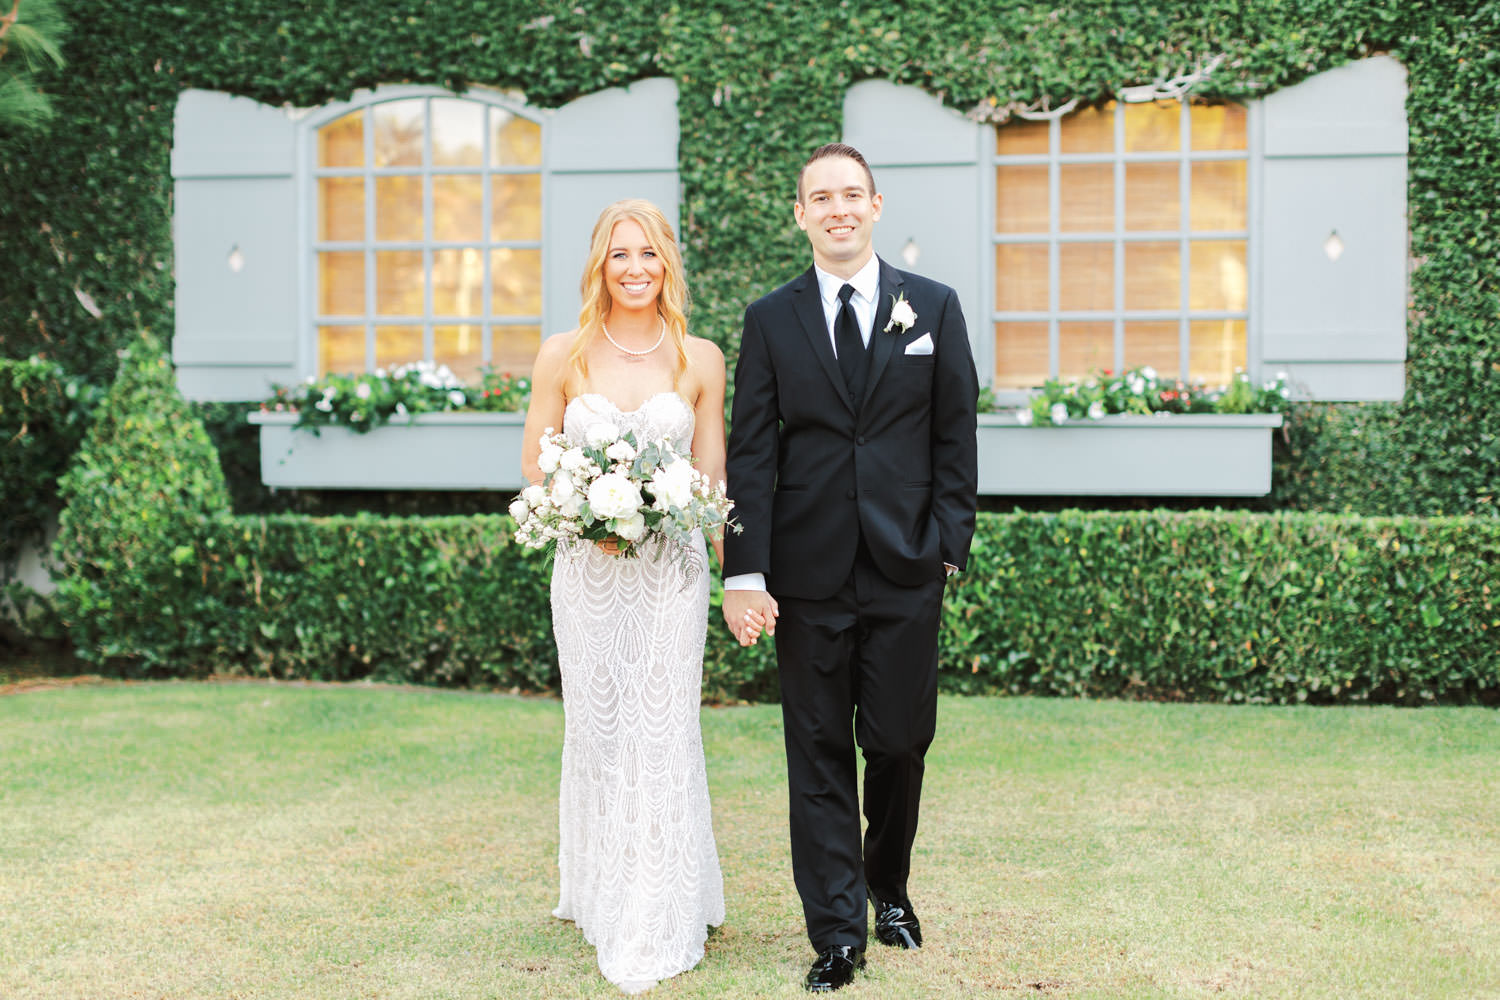 Bride and groom in front of an ivy-covered building with blue shutters. Bride wearing a Galia Lahav Gala gown with a sweetheart neckline carrying an ivory and green bouquet. Del Mar Country Club Wedding by Cavin Elizabeth Photography